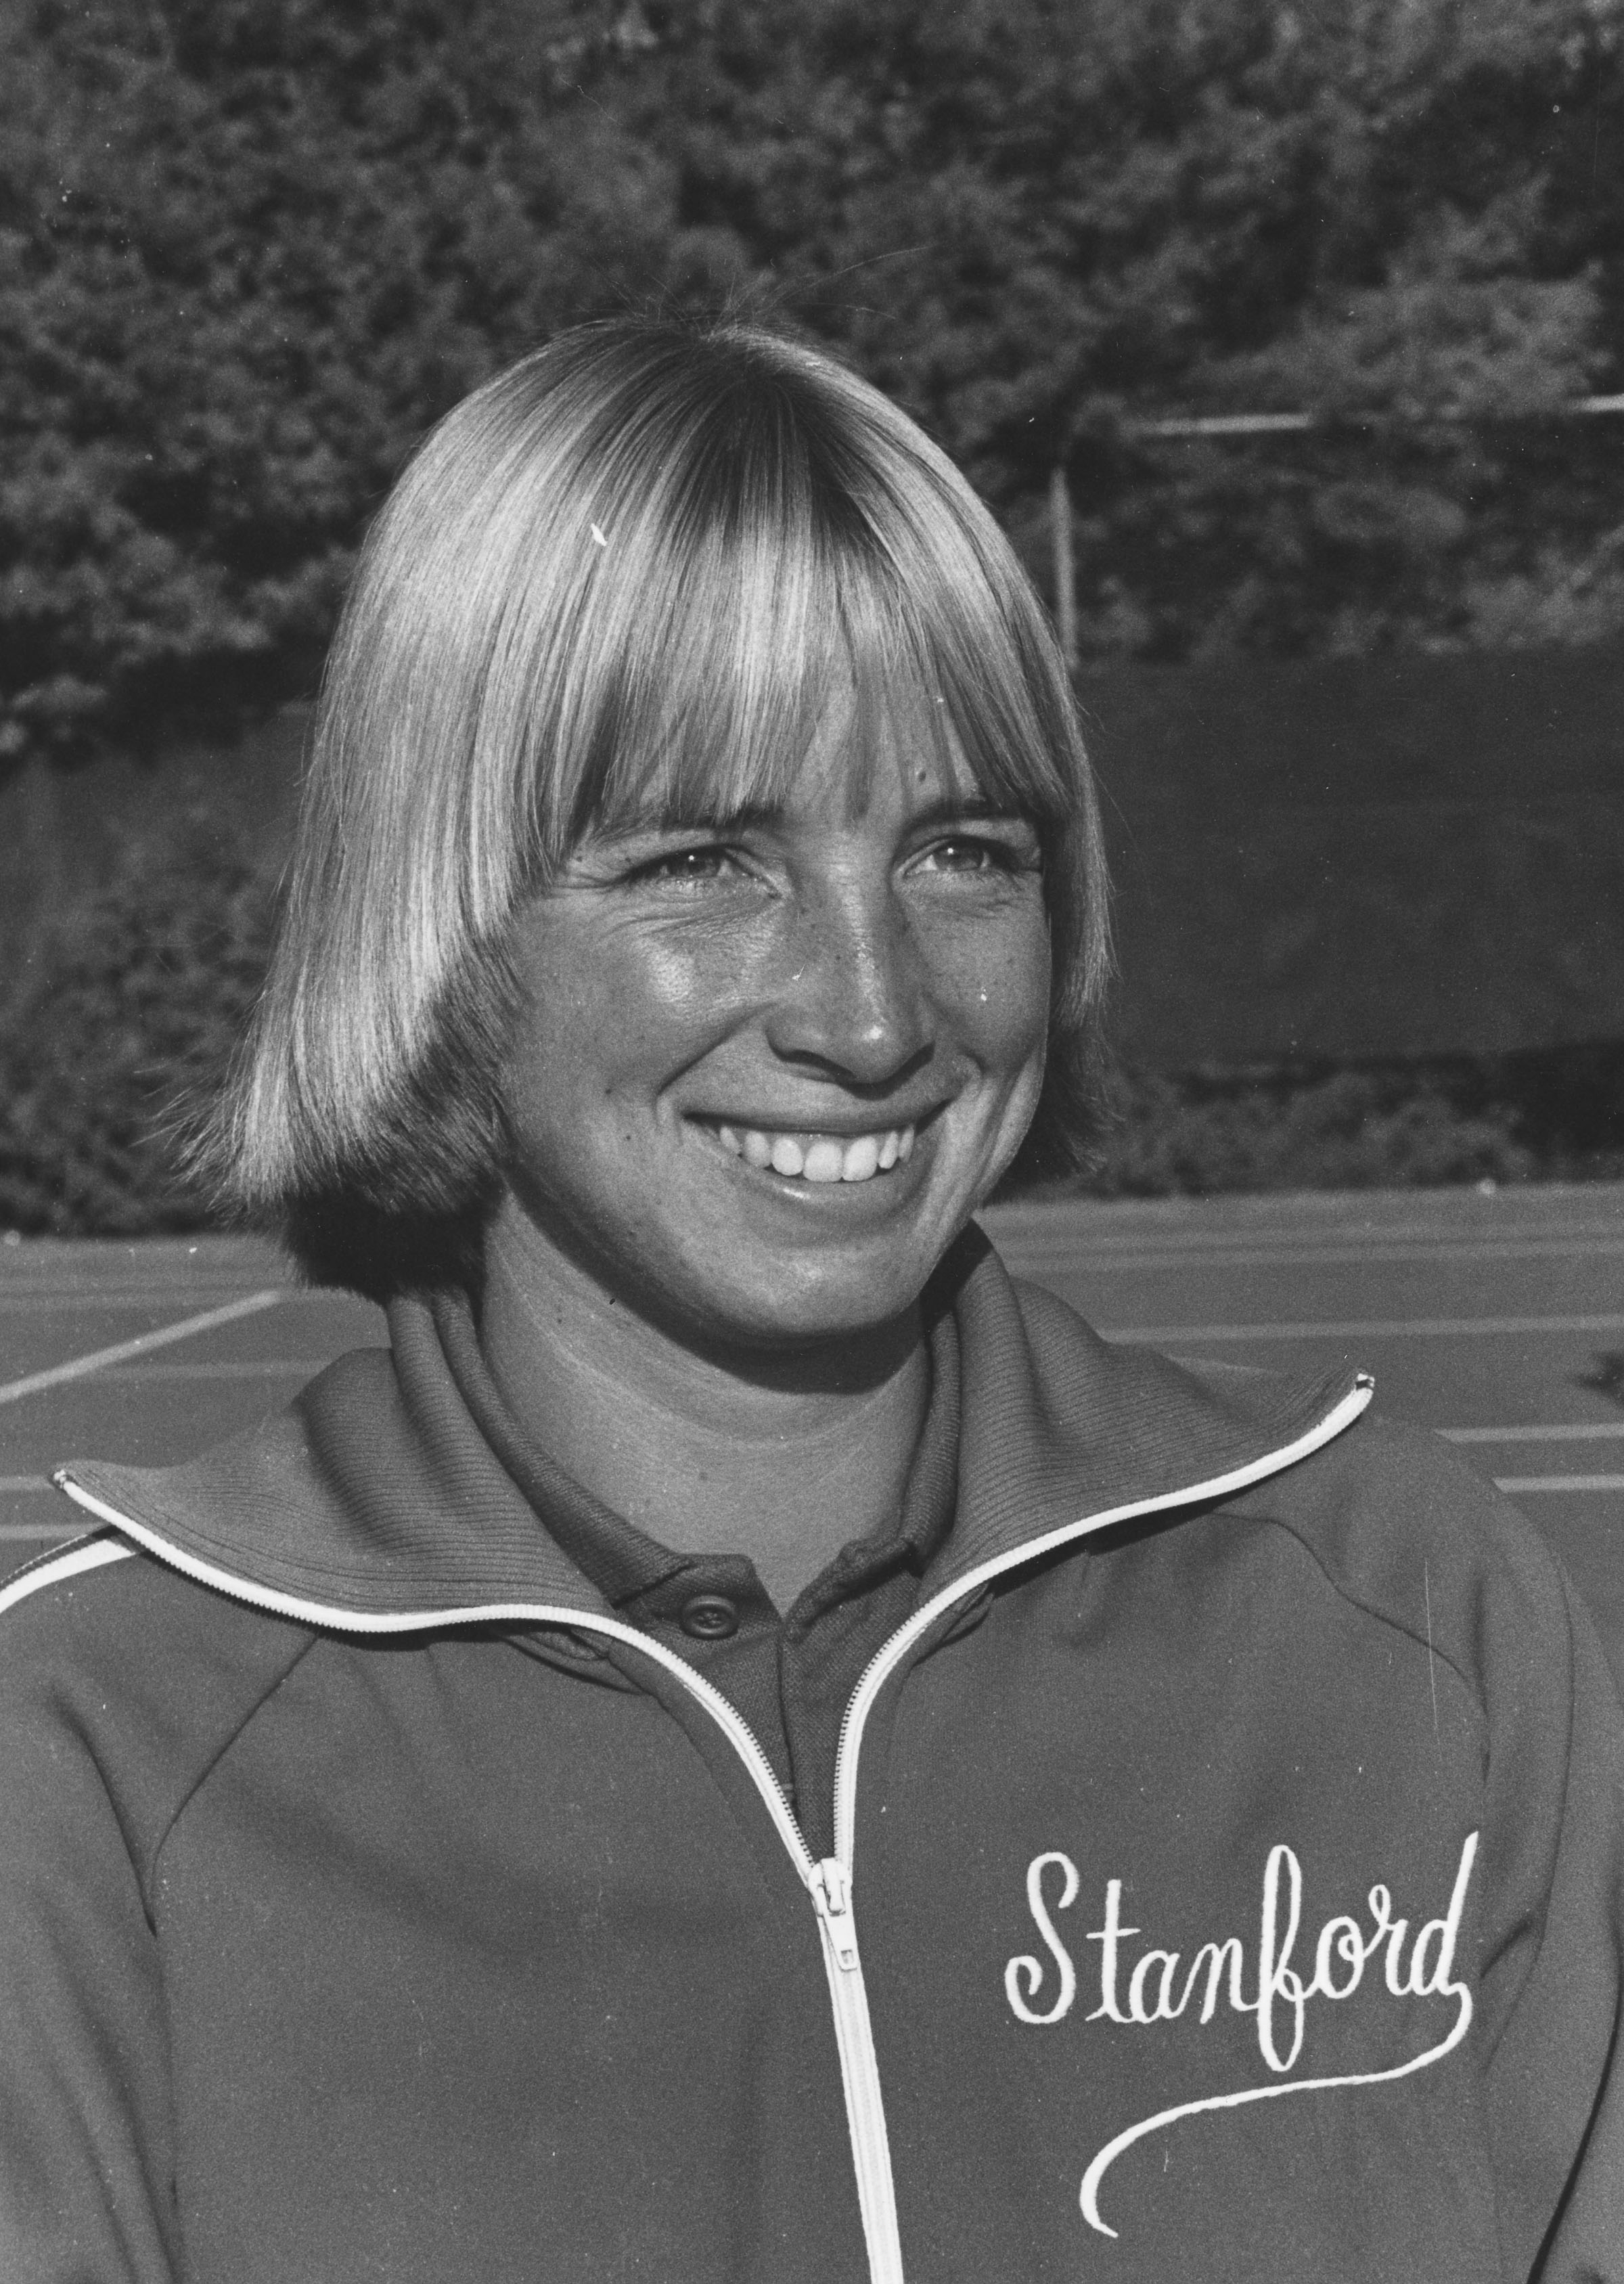 Women's Tennis Coach at Stanford and led the women's team to an NCAA team championship in 1978 – the first NCAA championship in any women's sport for Stanford.